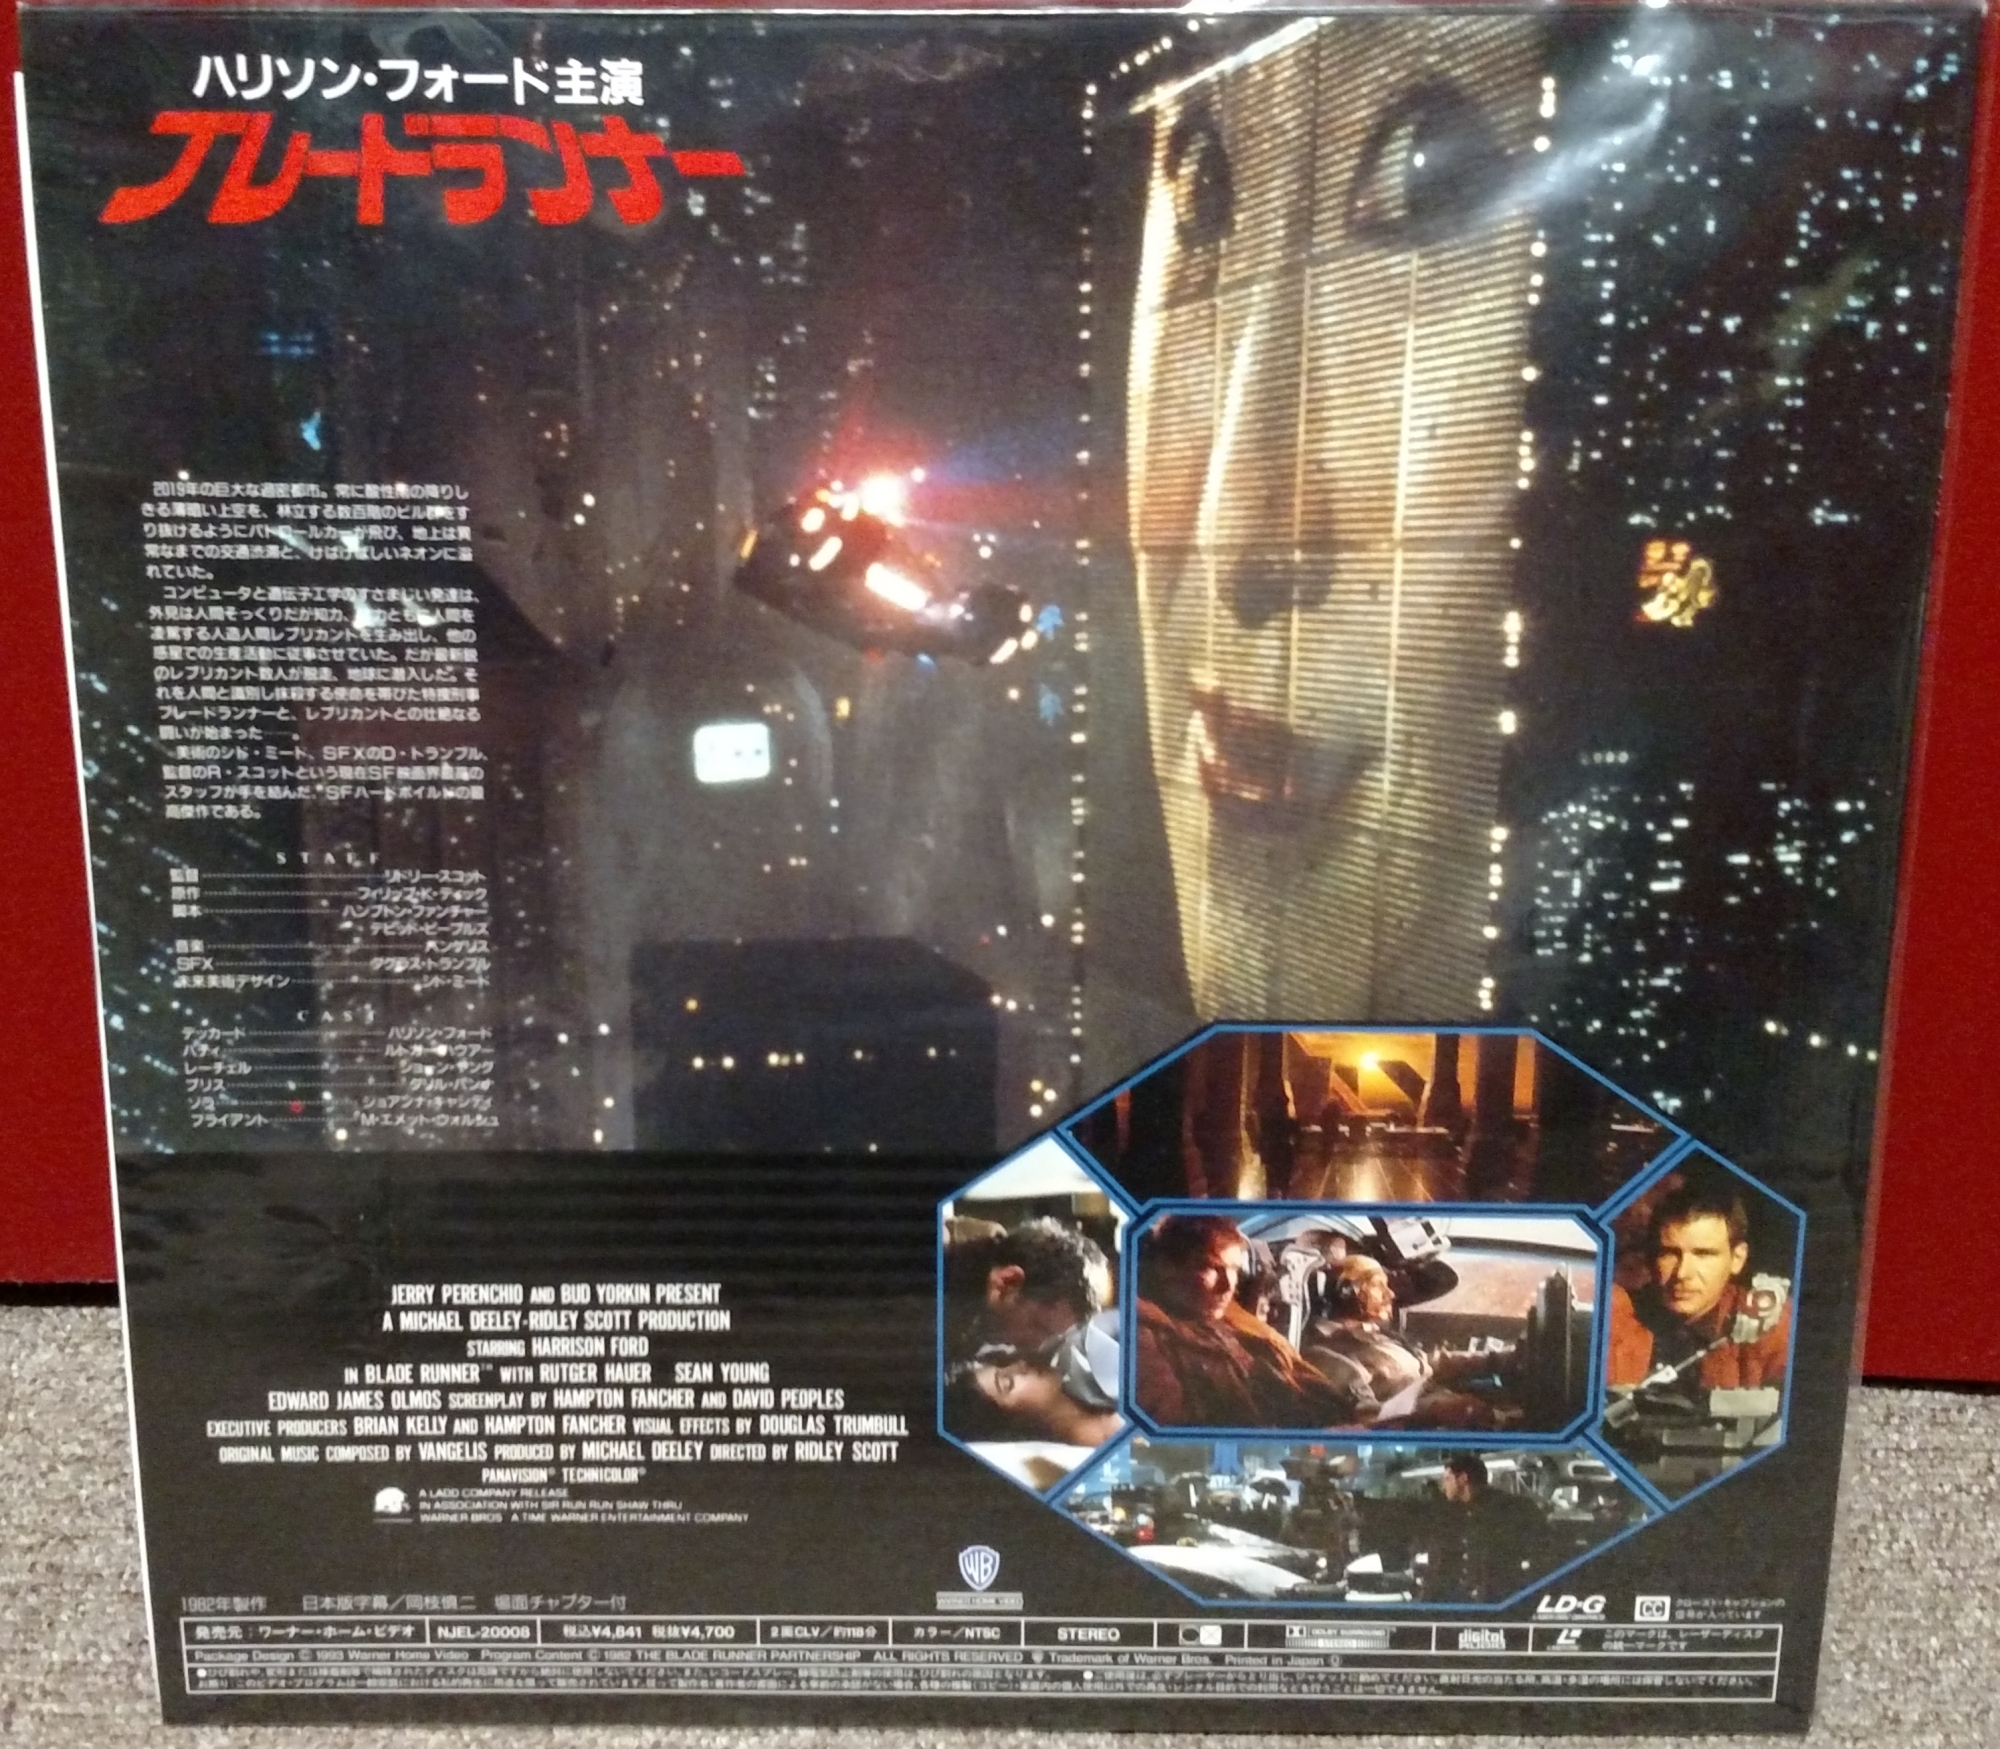 Blade Runner Laserdisc: WB Japan 1993 (back)